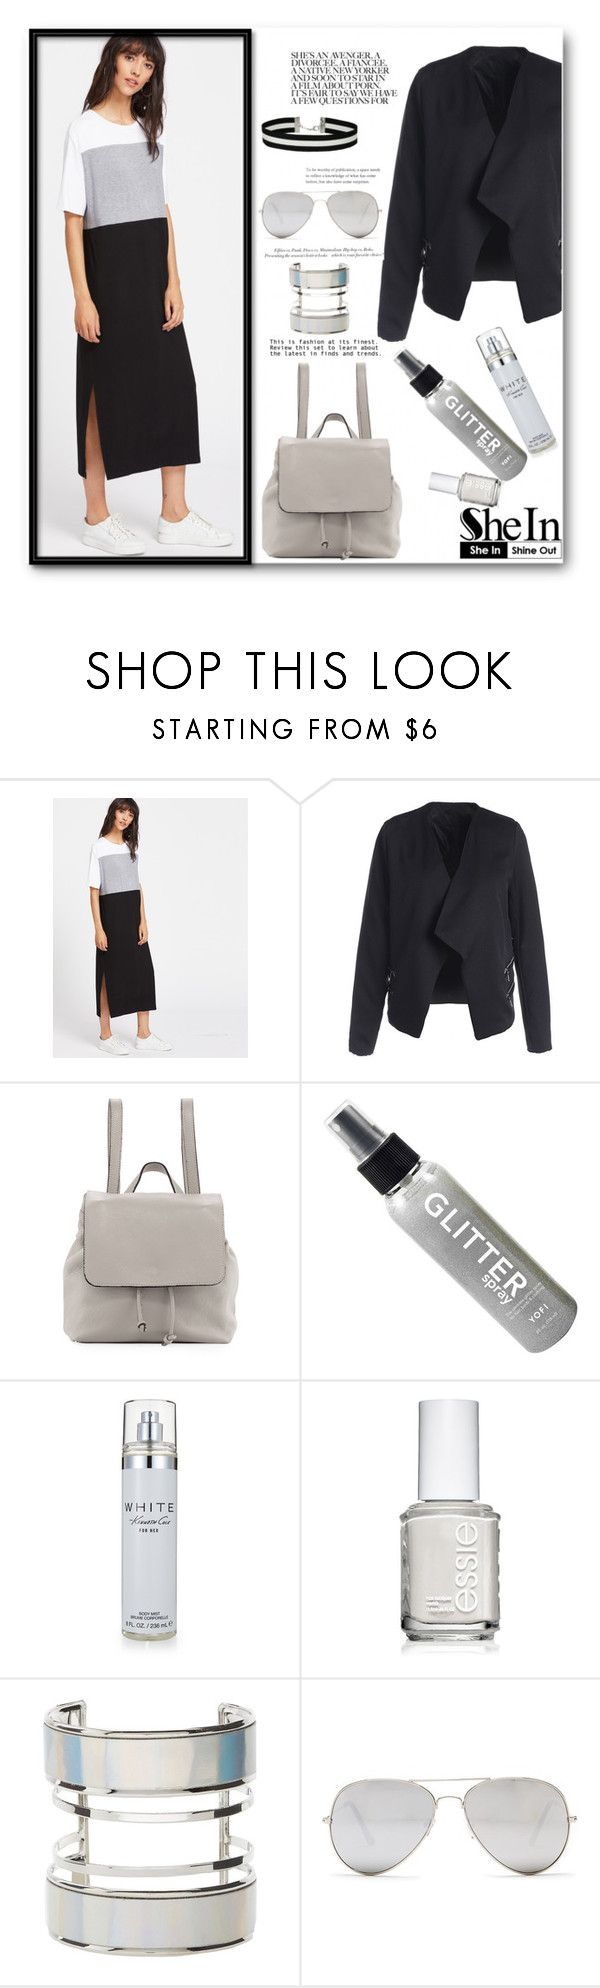 """""""Contest (shein)! - Win 30$ coupon!"""" by cassandria ❤ liked on Polyvore featuring Neiman Marcus, Kenneth Cole, Essie, Charlotte Russe, H&M, Sunny Rebel, Miss Selfridge, men's fashion and menswear"""